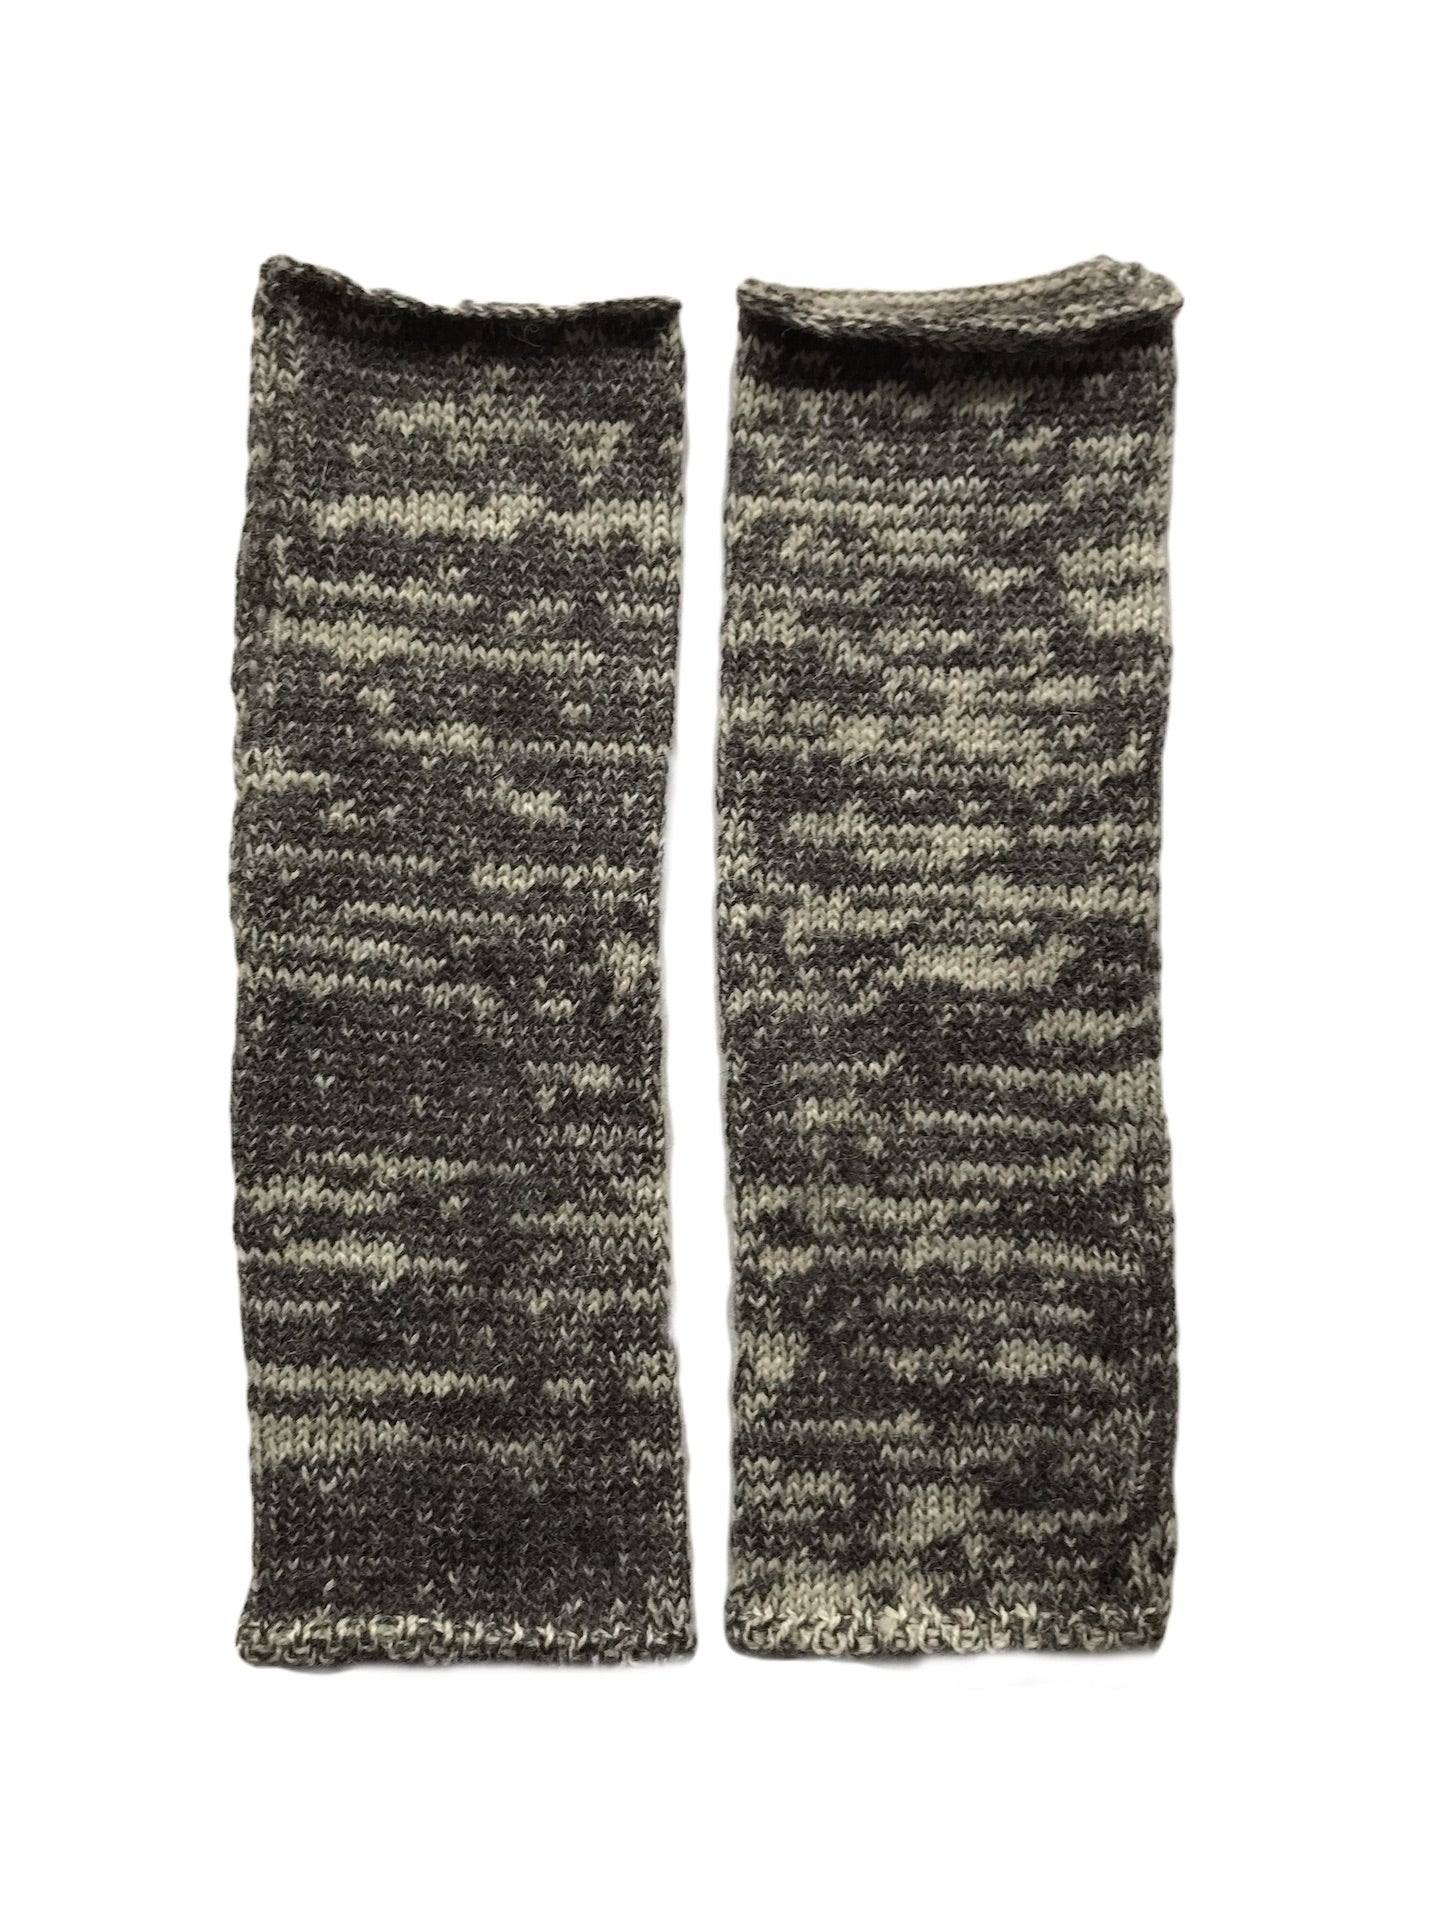 Charcoal Marl British Alpaca Gloves in softest natural yarn by Ally Bee Knitwear